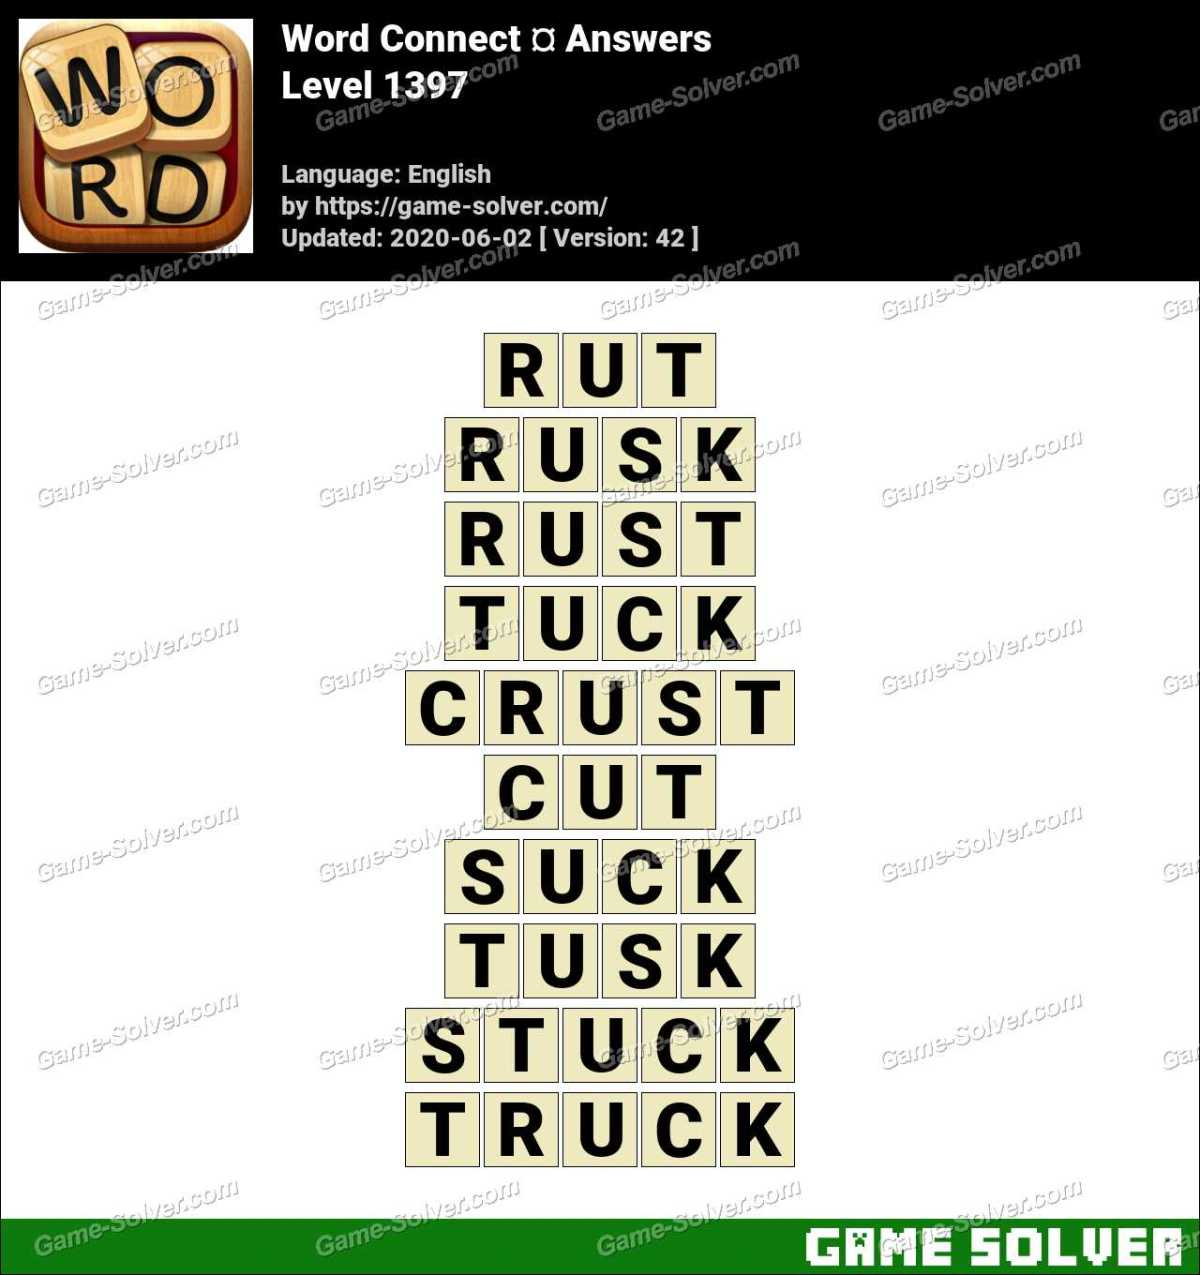 Word Connect Level 1397 Answers